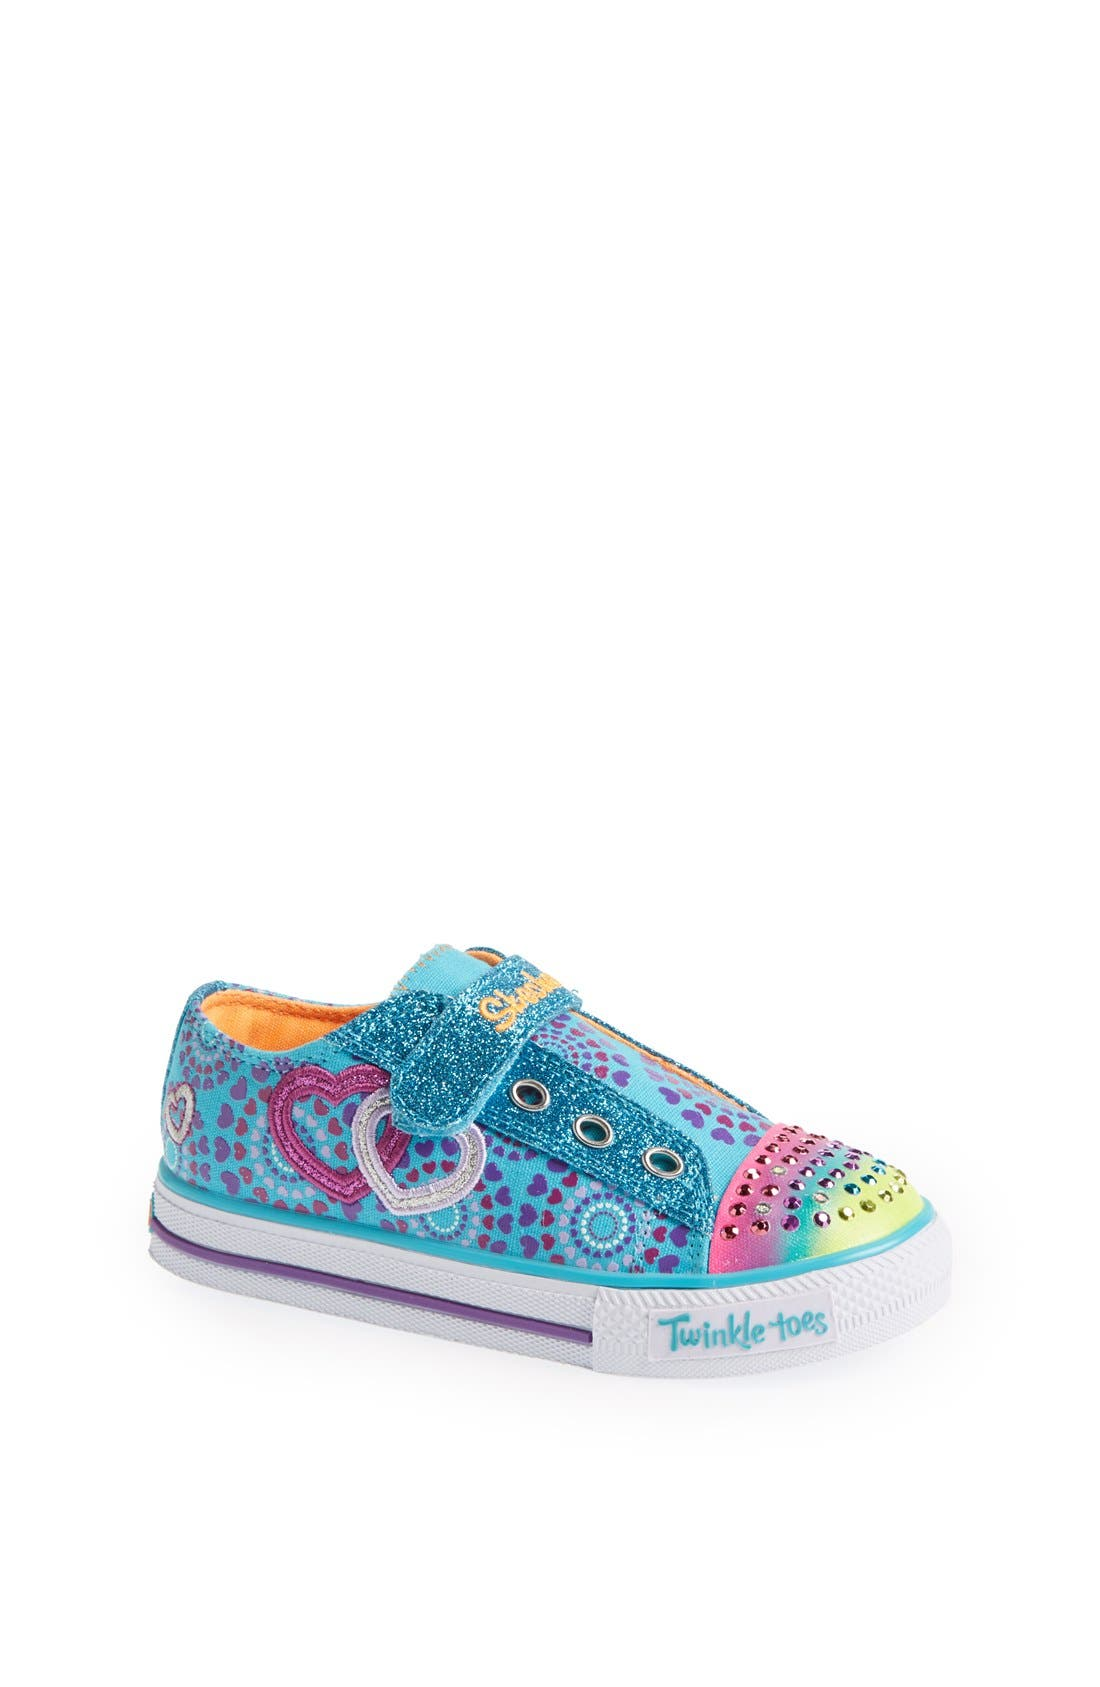 Alternate Image 1 Selected - SKECHERS 'Shuffles - Love Burst' Sneaker (Toddler)